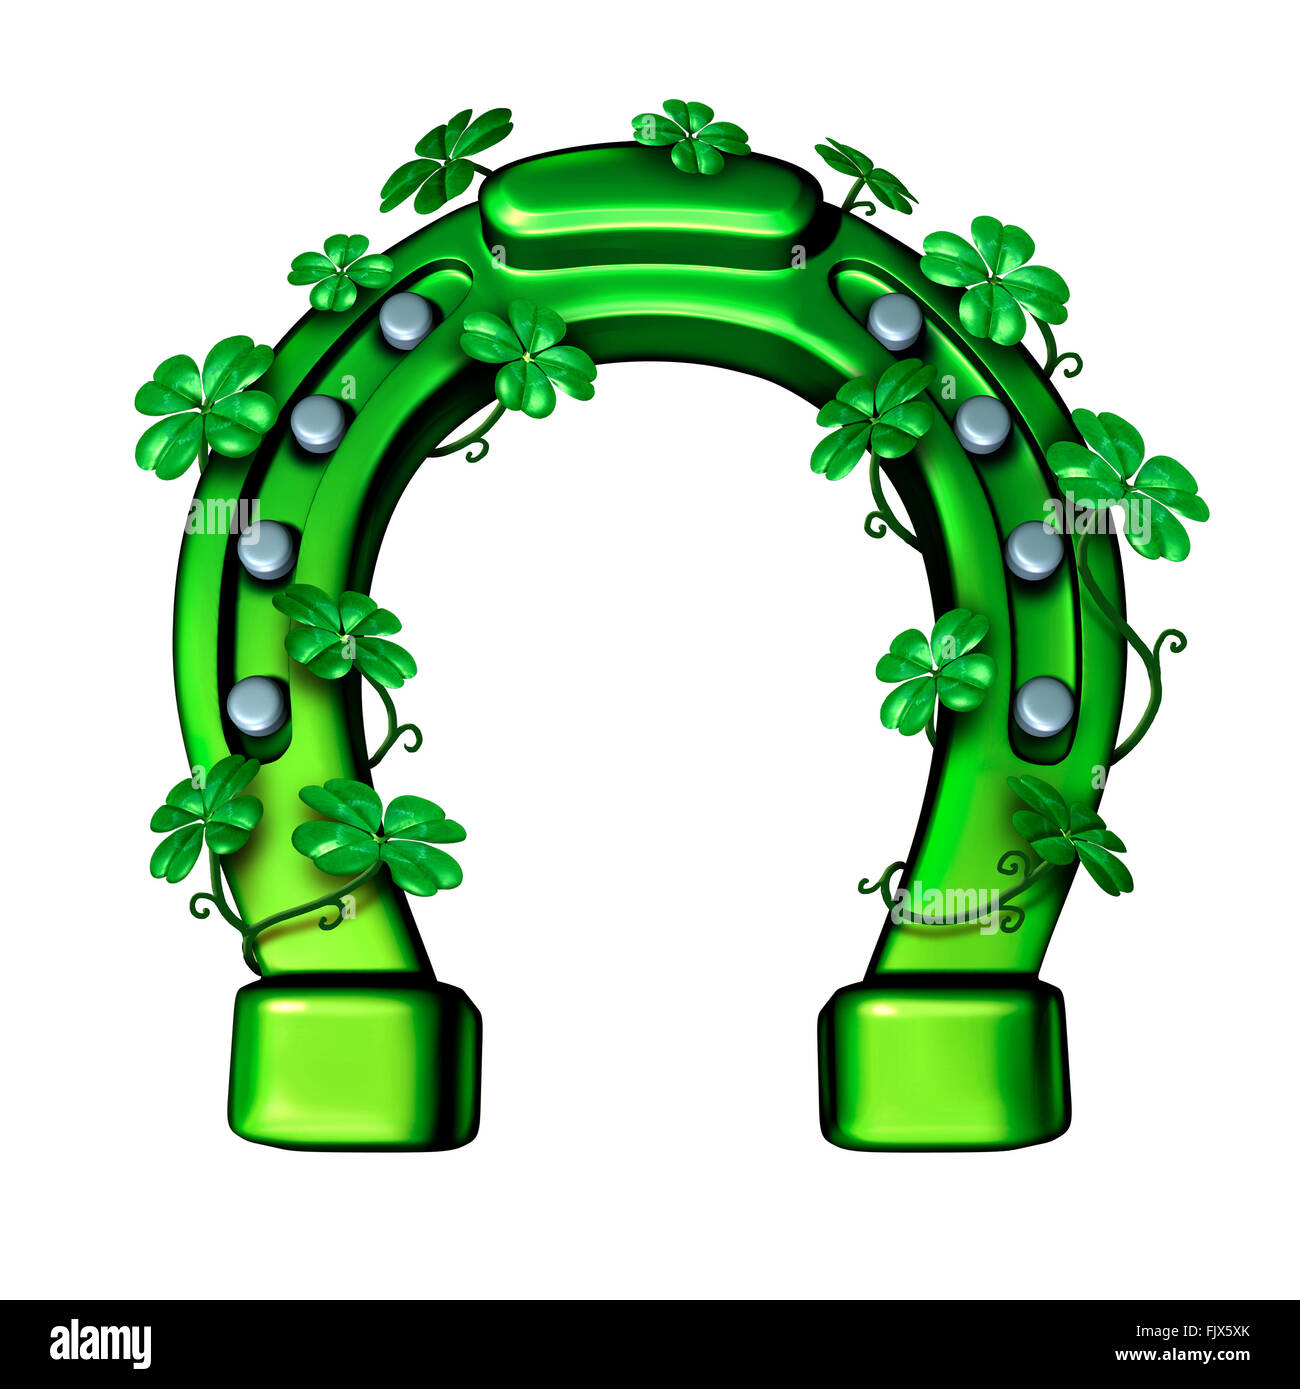 Green horseshoe as a lucky fortune symbol for saint patricks day or luck of the Irish icon wrapped with shamrock - Stock Image